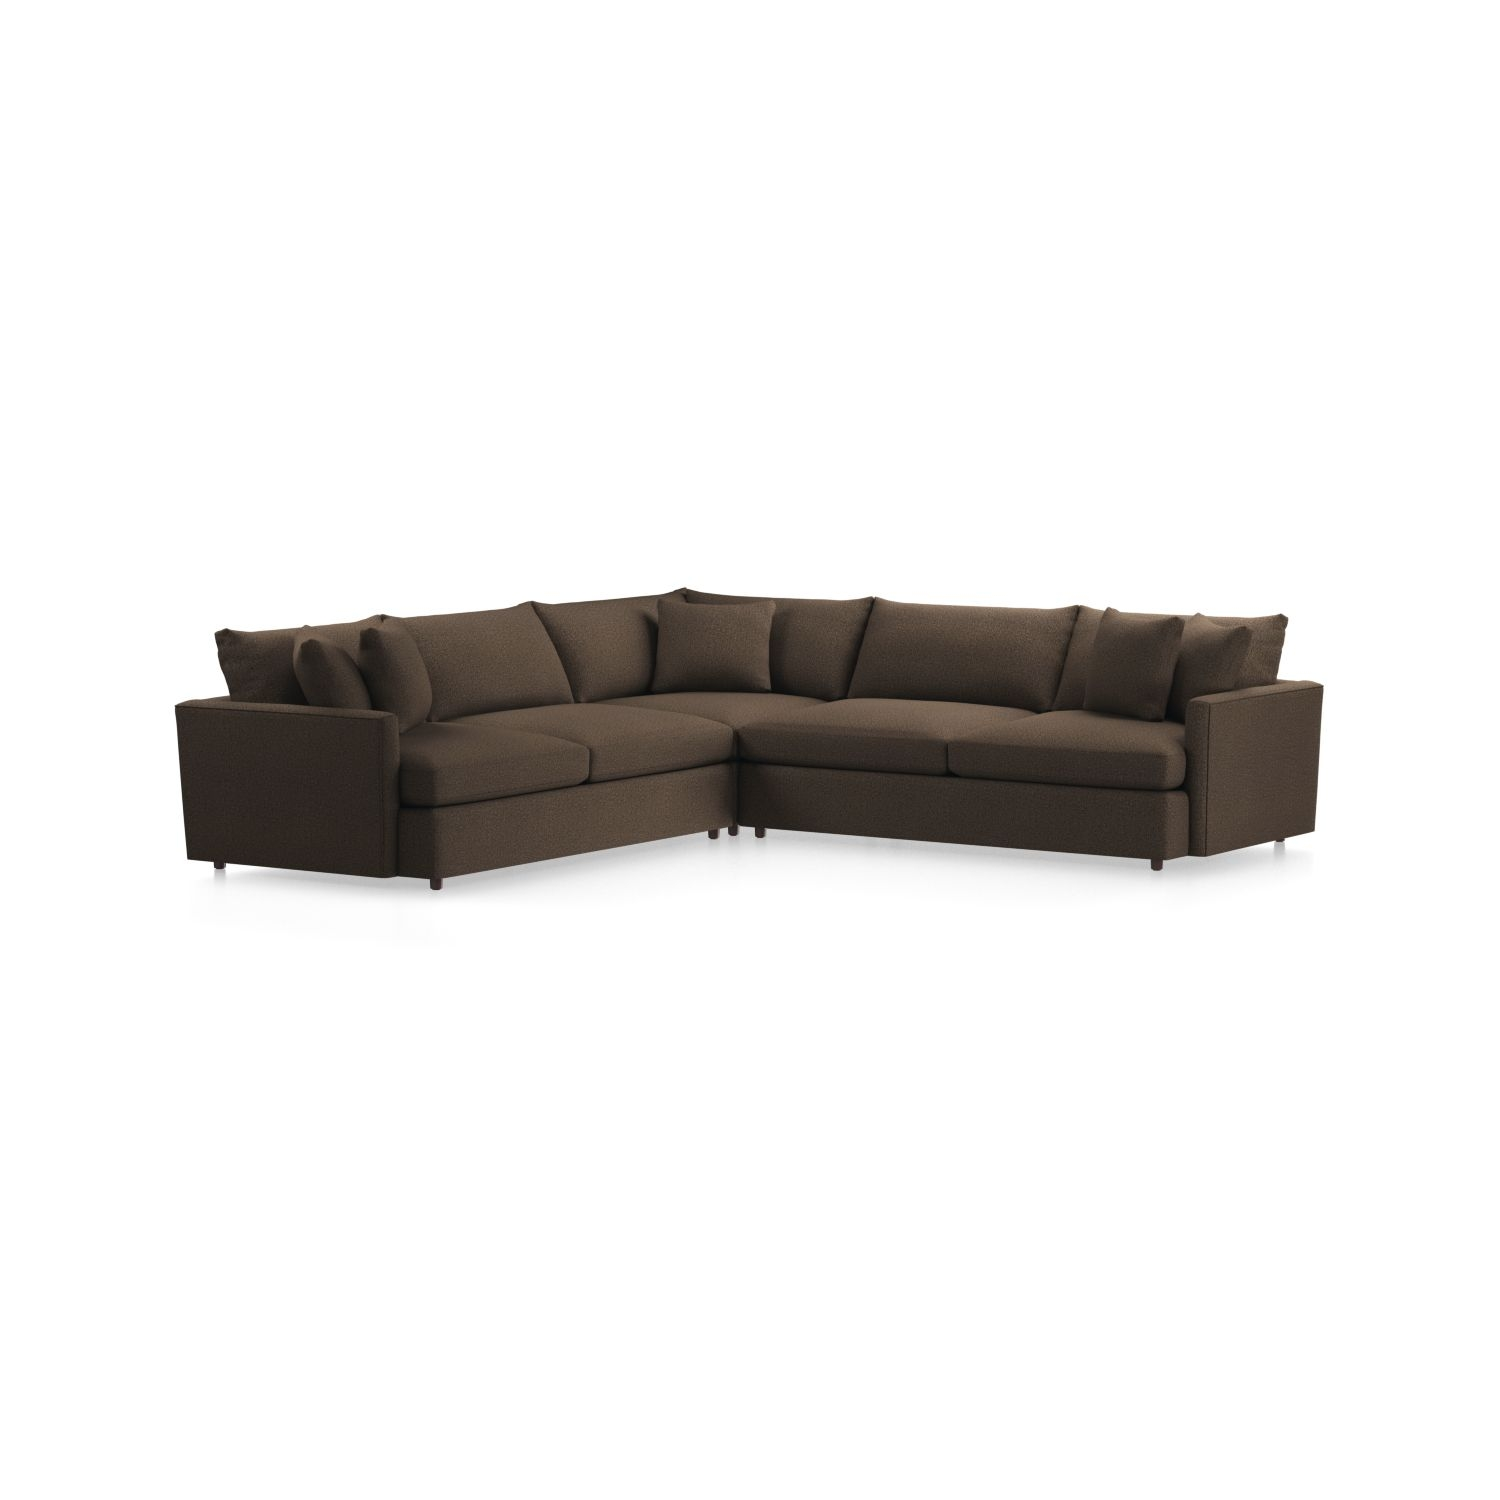 Lounge Ii 3 Piece Sectional Sofa + Reviews | Crate And Barrel With Regard To Glamour Ii 3 Piece Sectionals (Image 17 of 25)